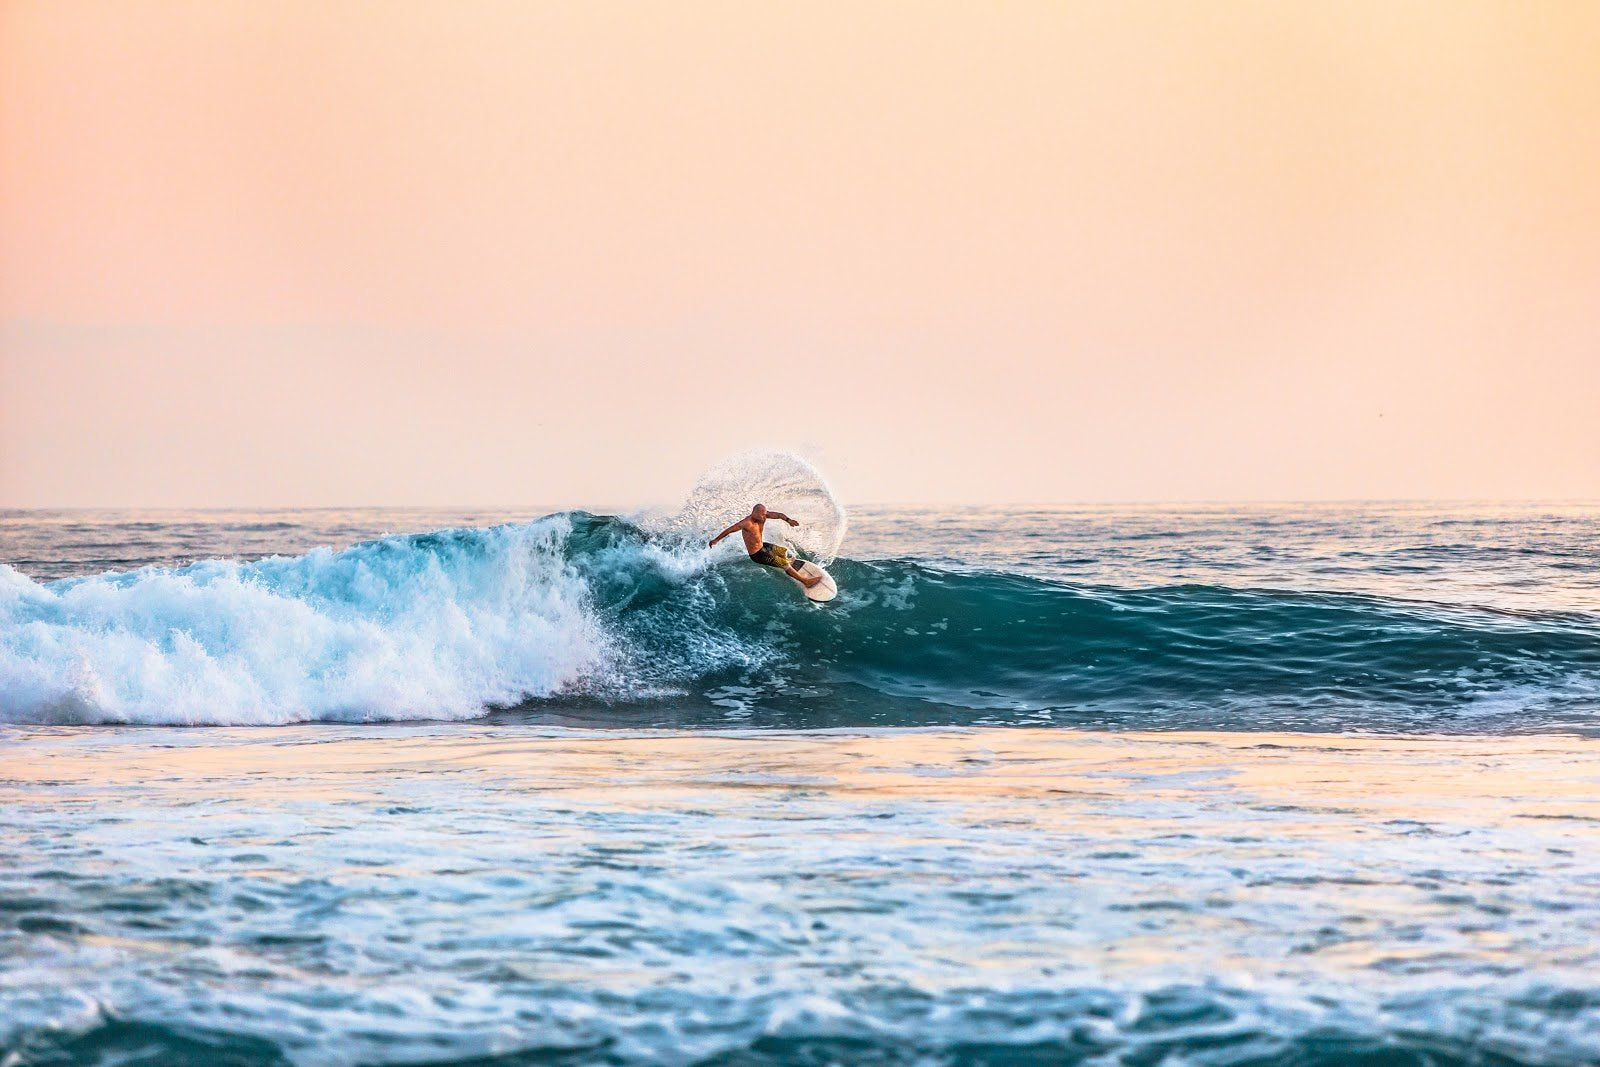 Surfer action shot by Teddy Kelley